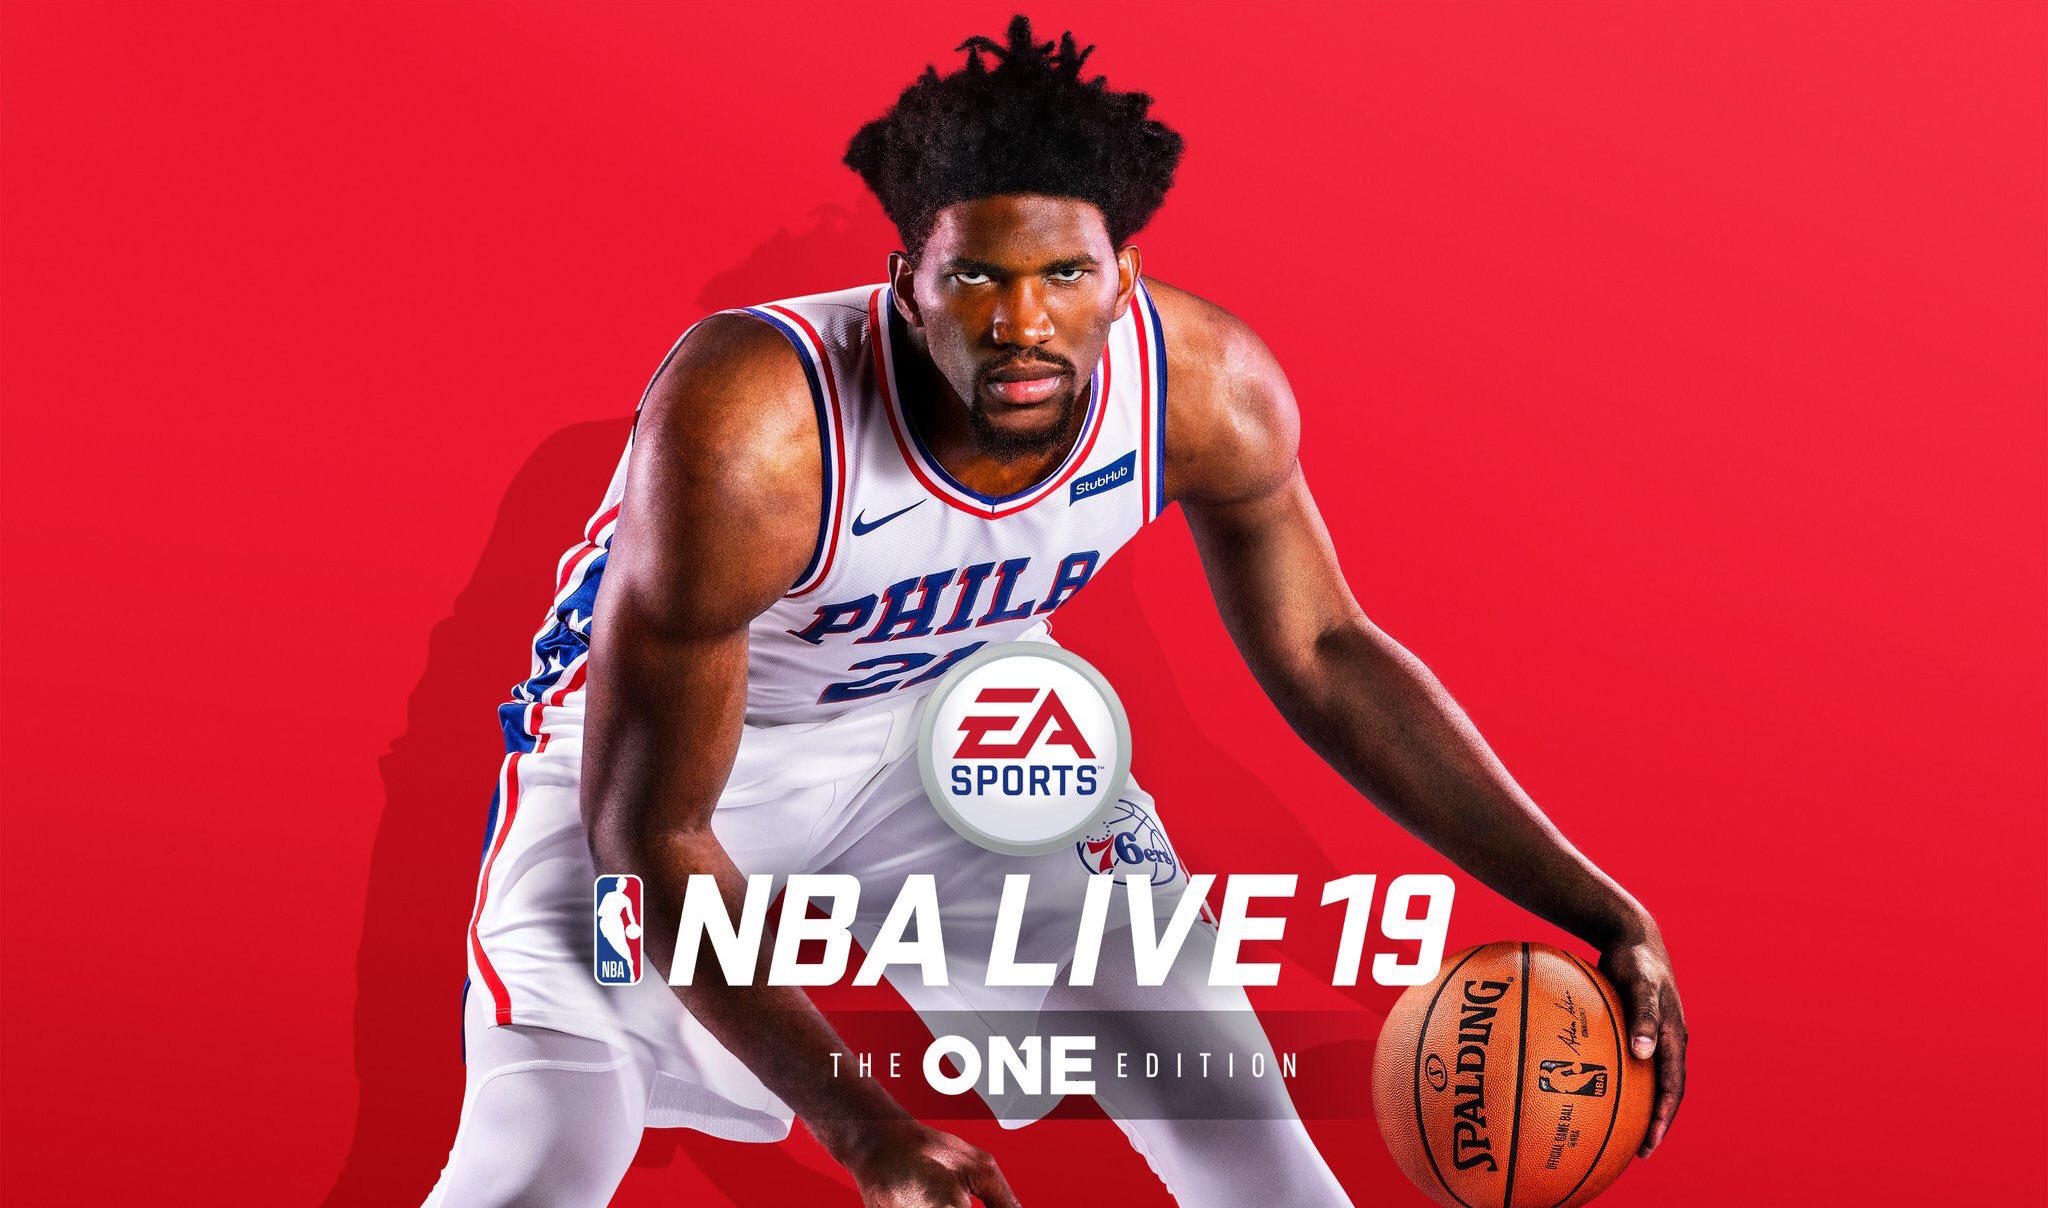 Joel Embiid Is Nba Live 19's Cover Athlete